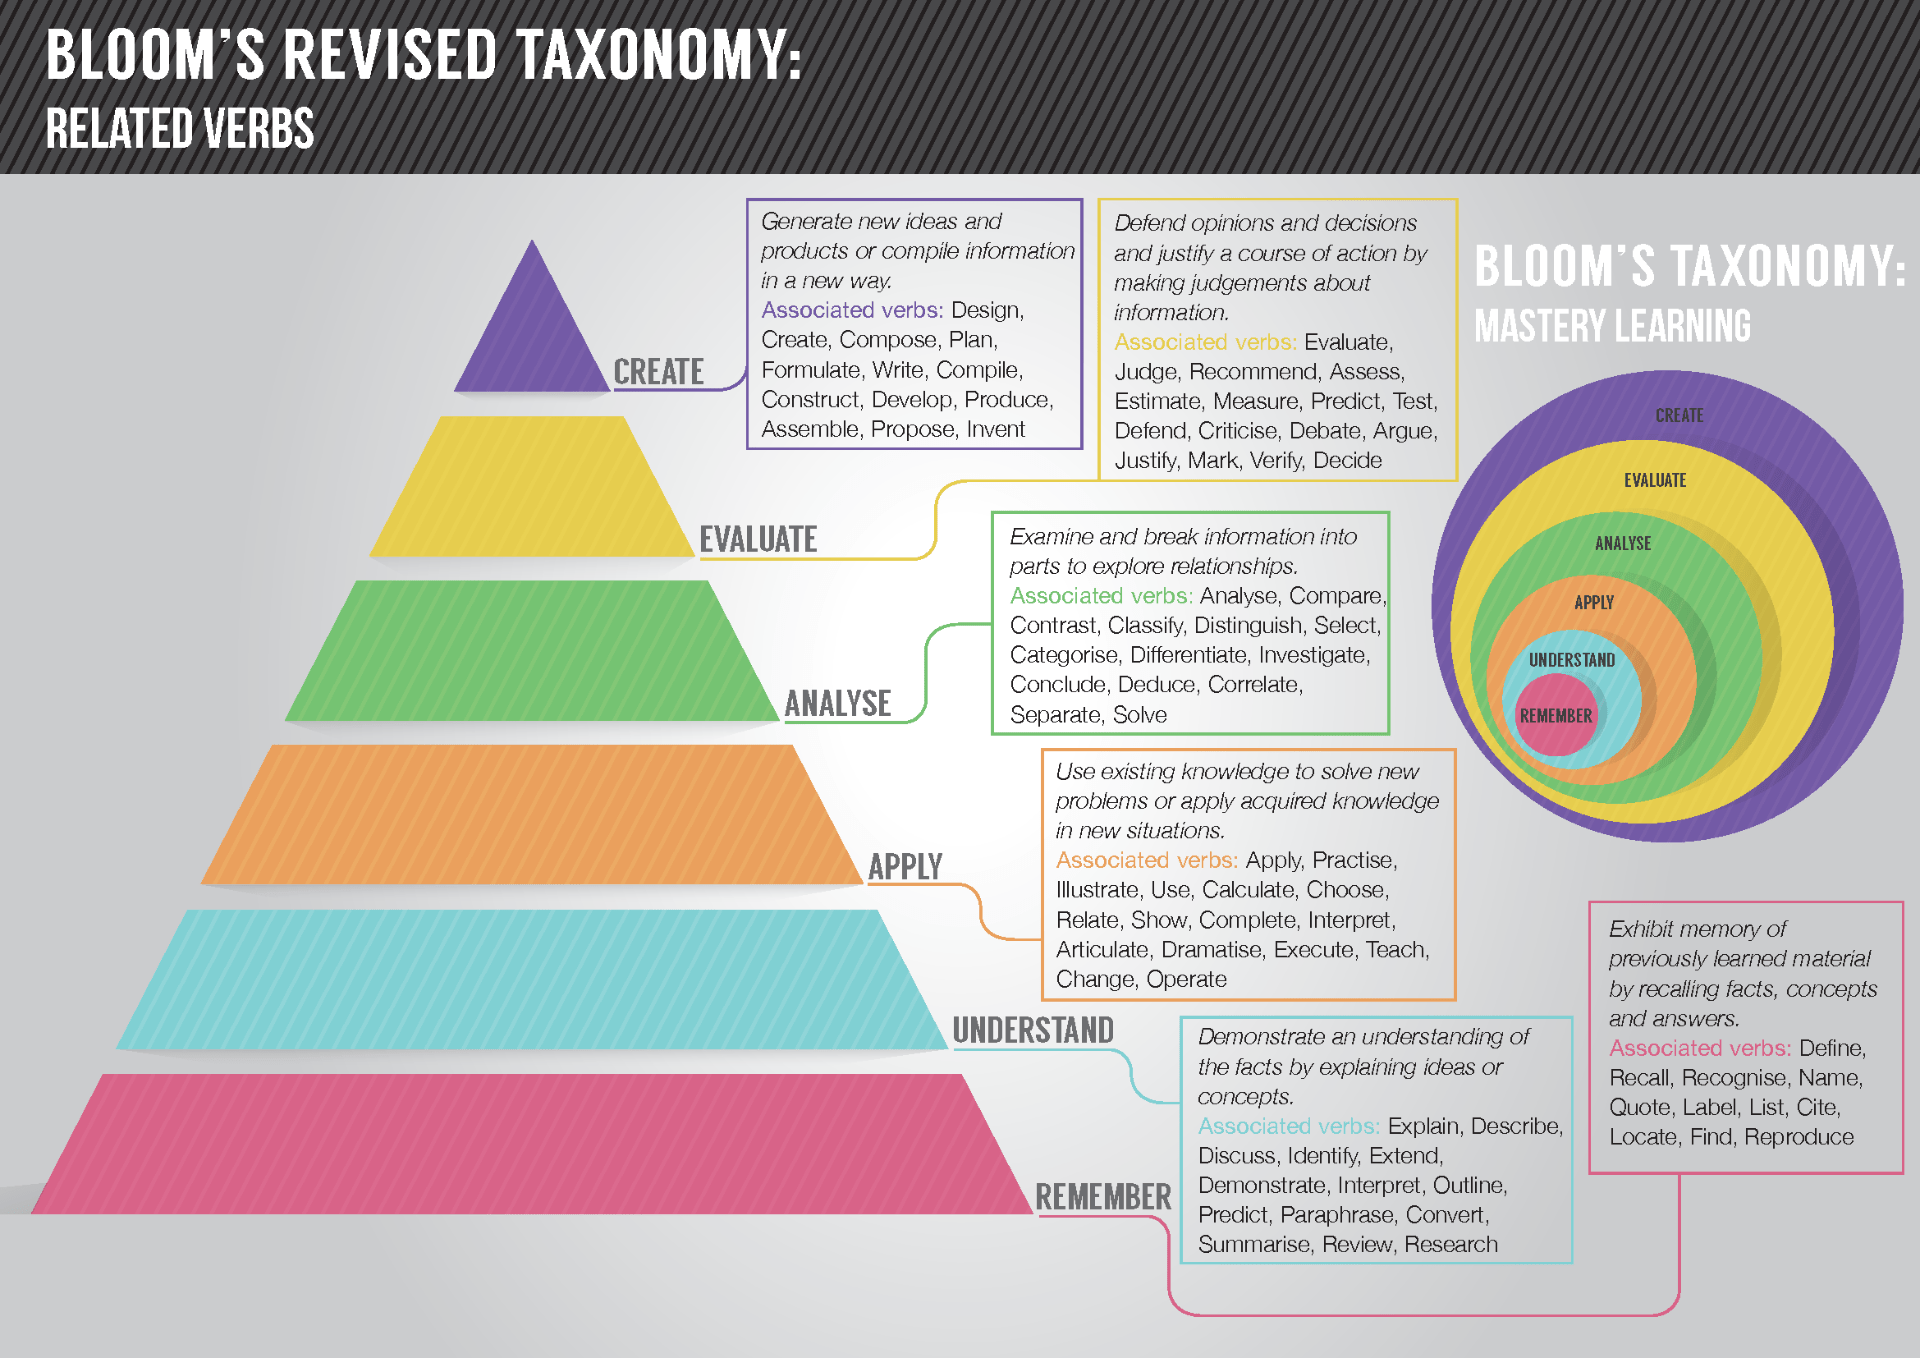 Bloom's Revised Taxonomy: Related Verbs